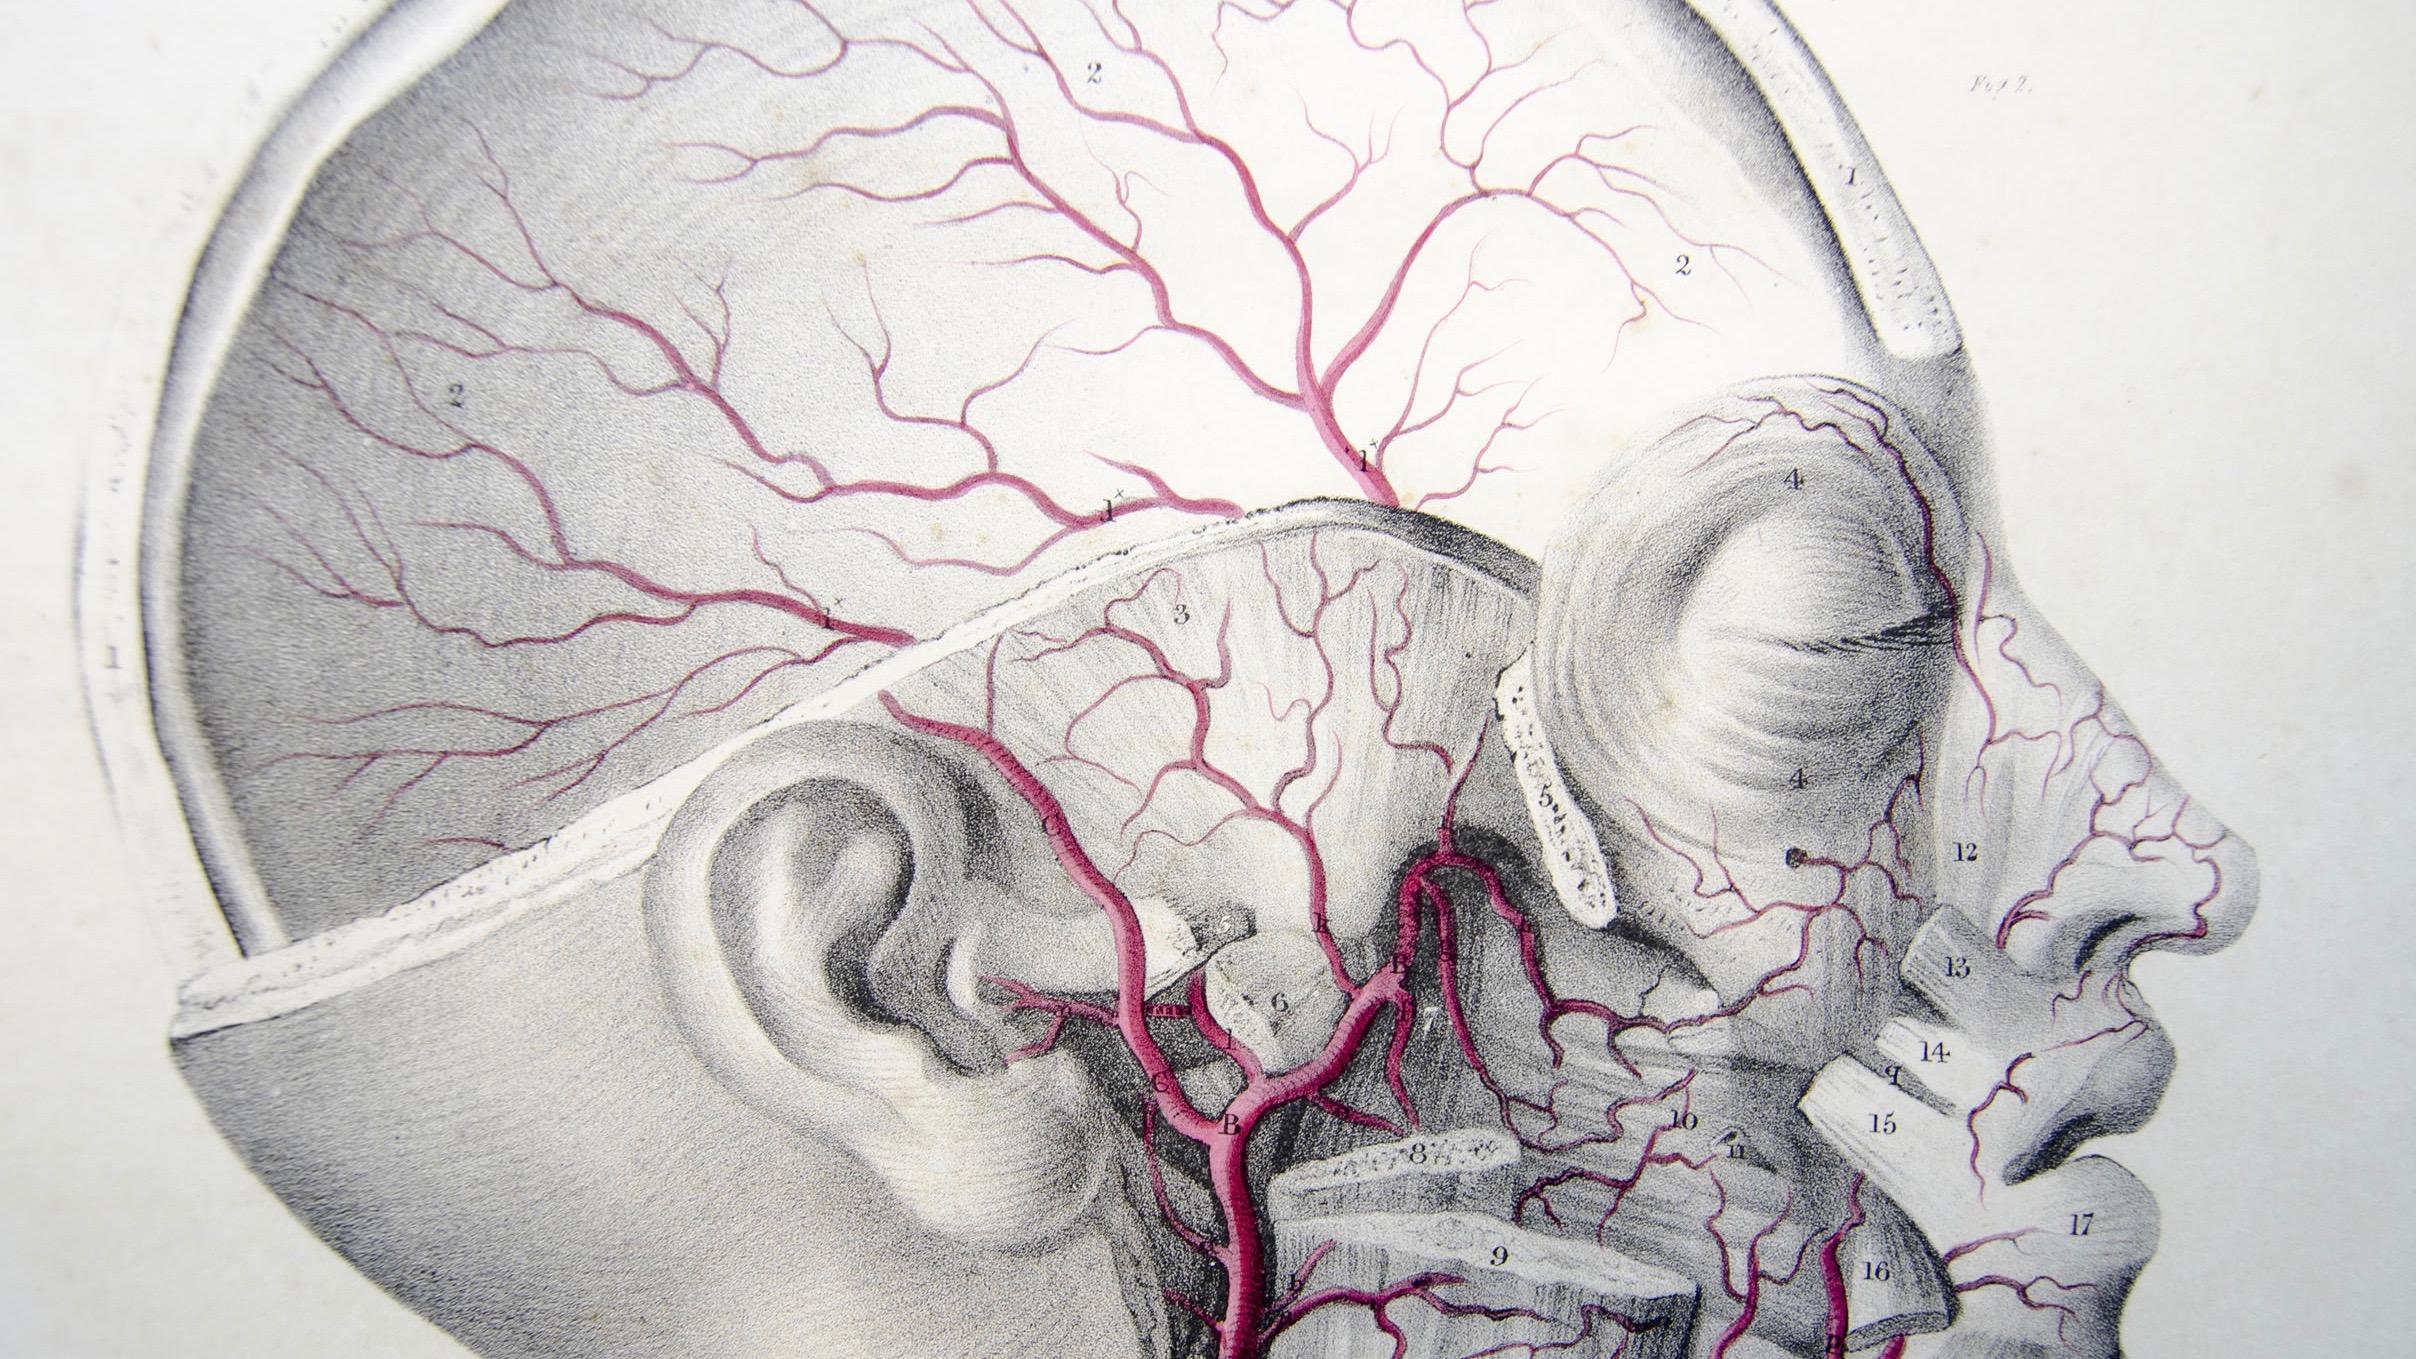 Late clot extraction can save brain cells of stroke victims